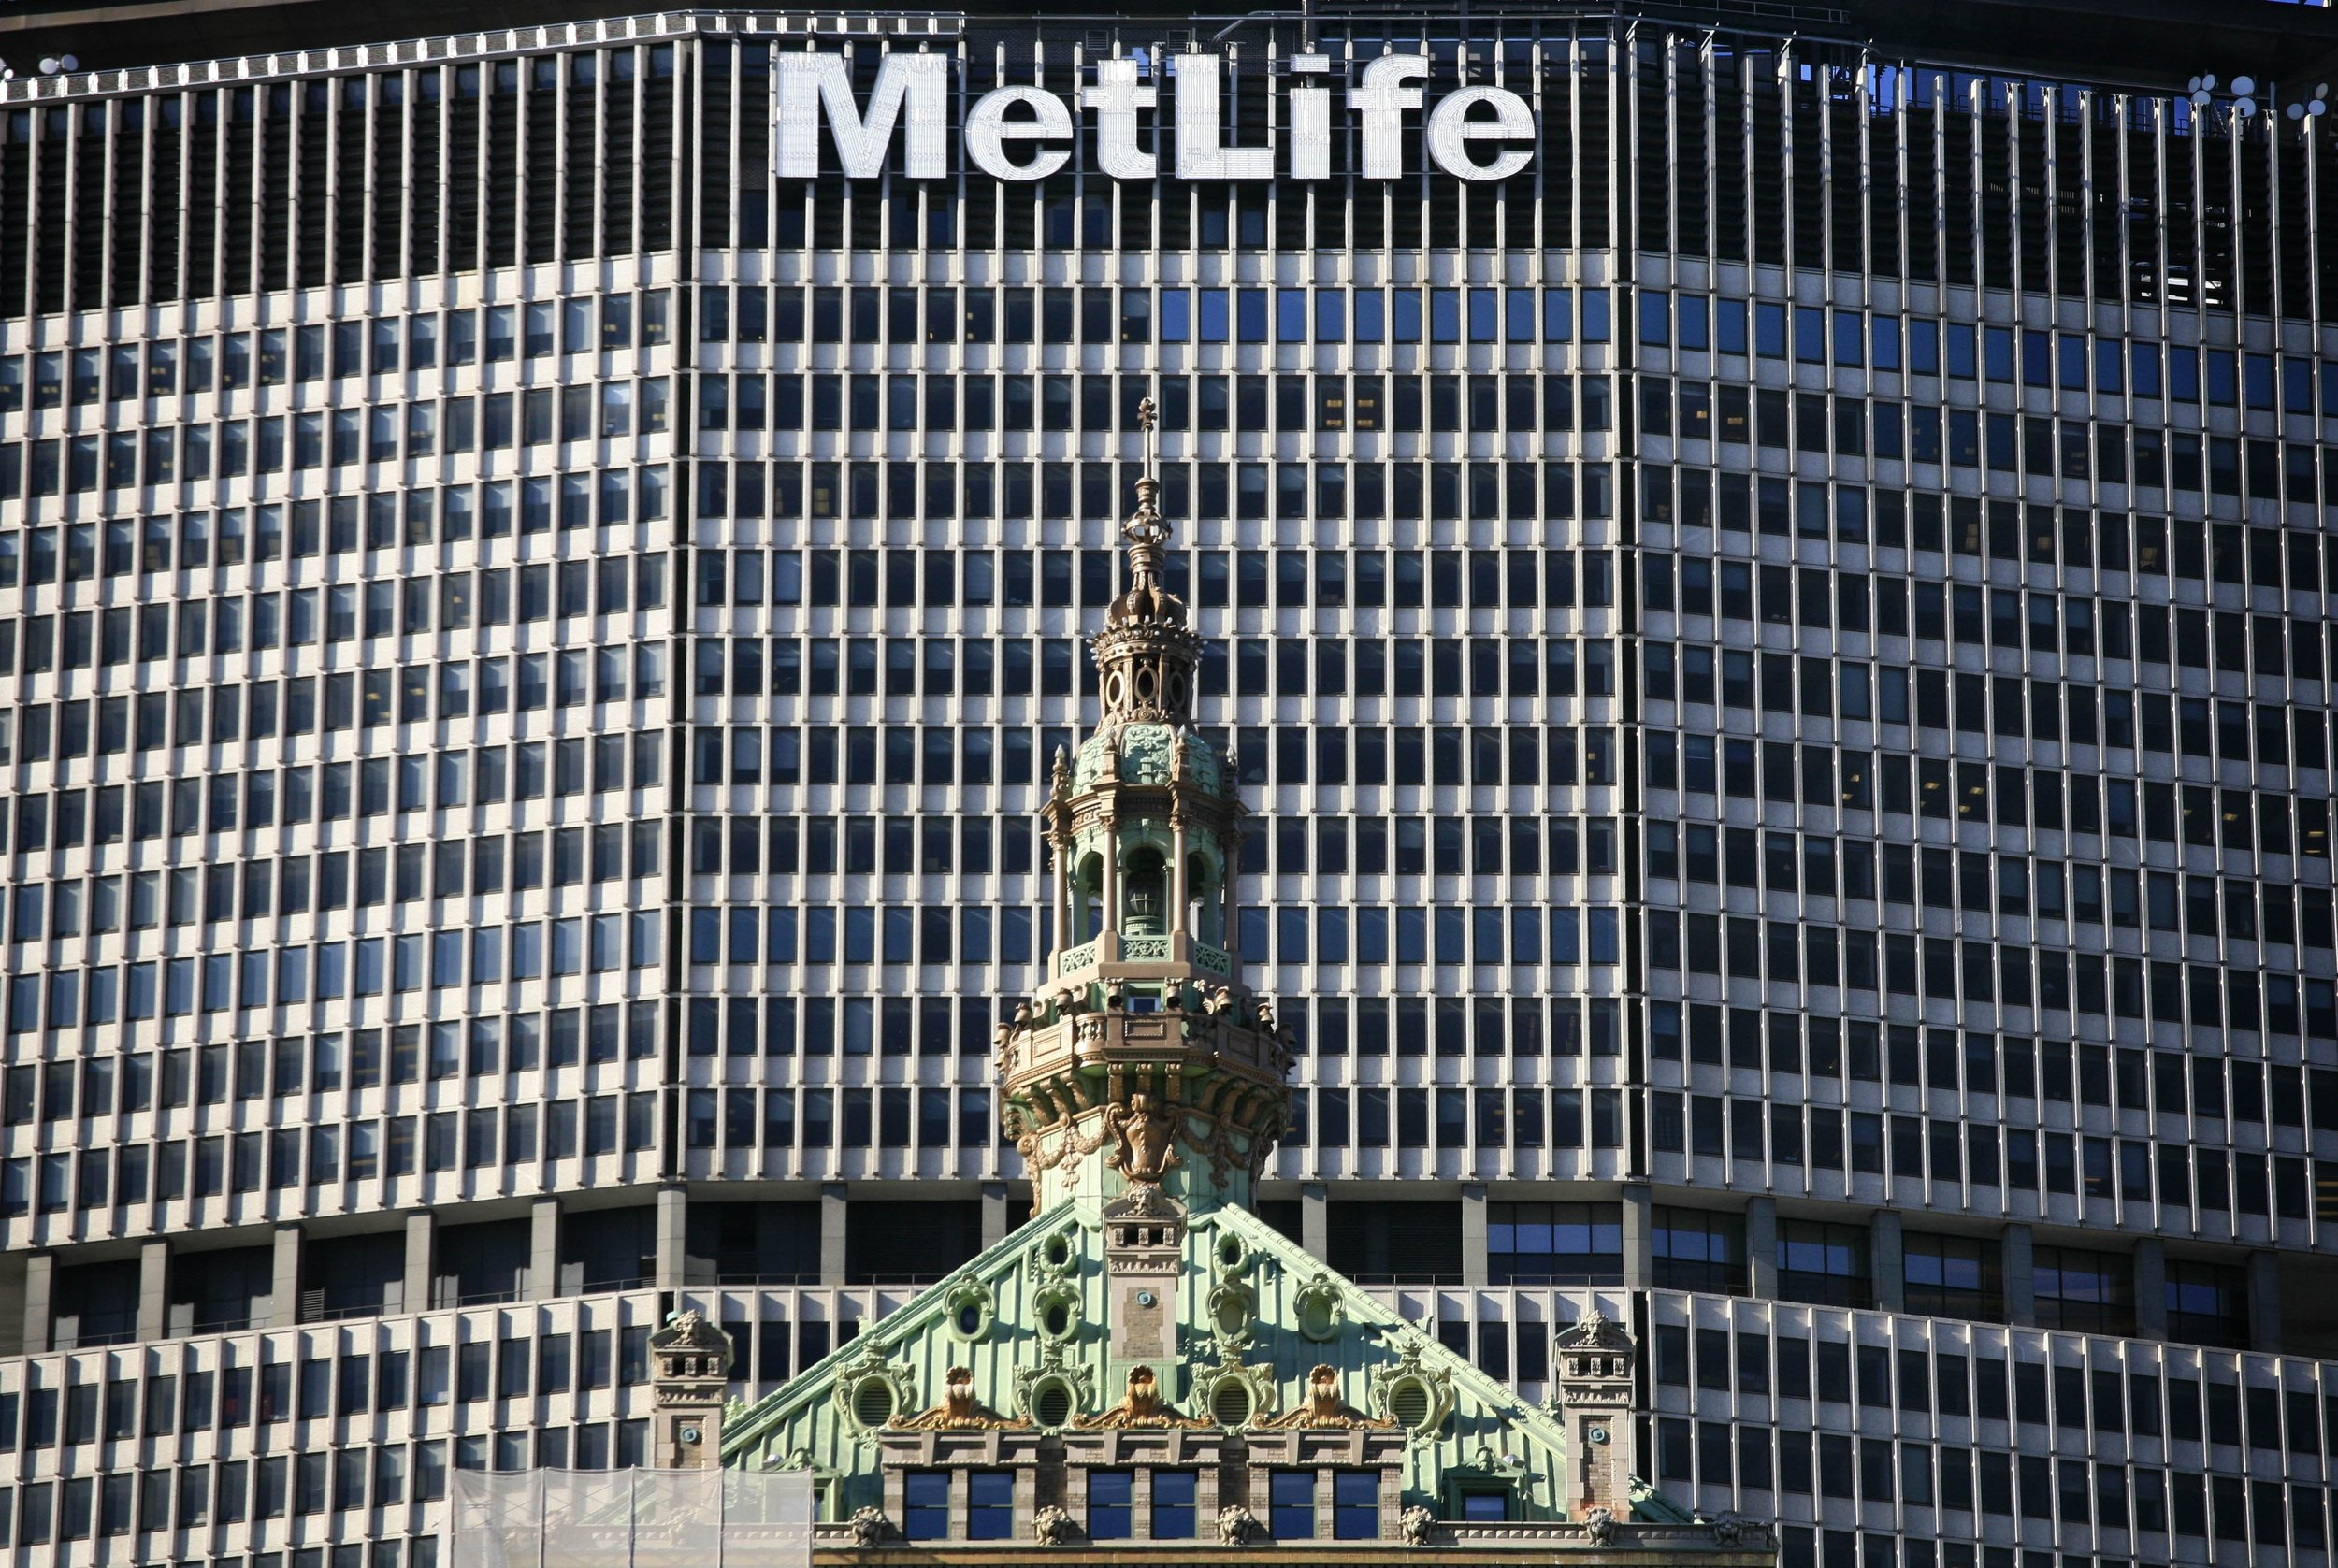 MetLife, Inc. is the holding corporation for the Metropolitan Life Insurance Company, better known as MetLife, and its affiliates. MetLife is among the largest global providers of insurance, annuities, and employee benefit programs, with 90 million customers in over 60 countrie